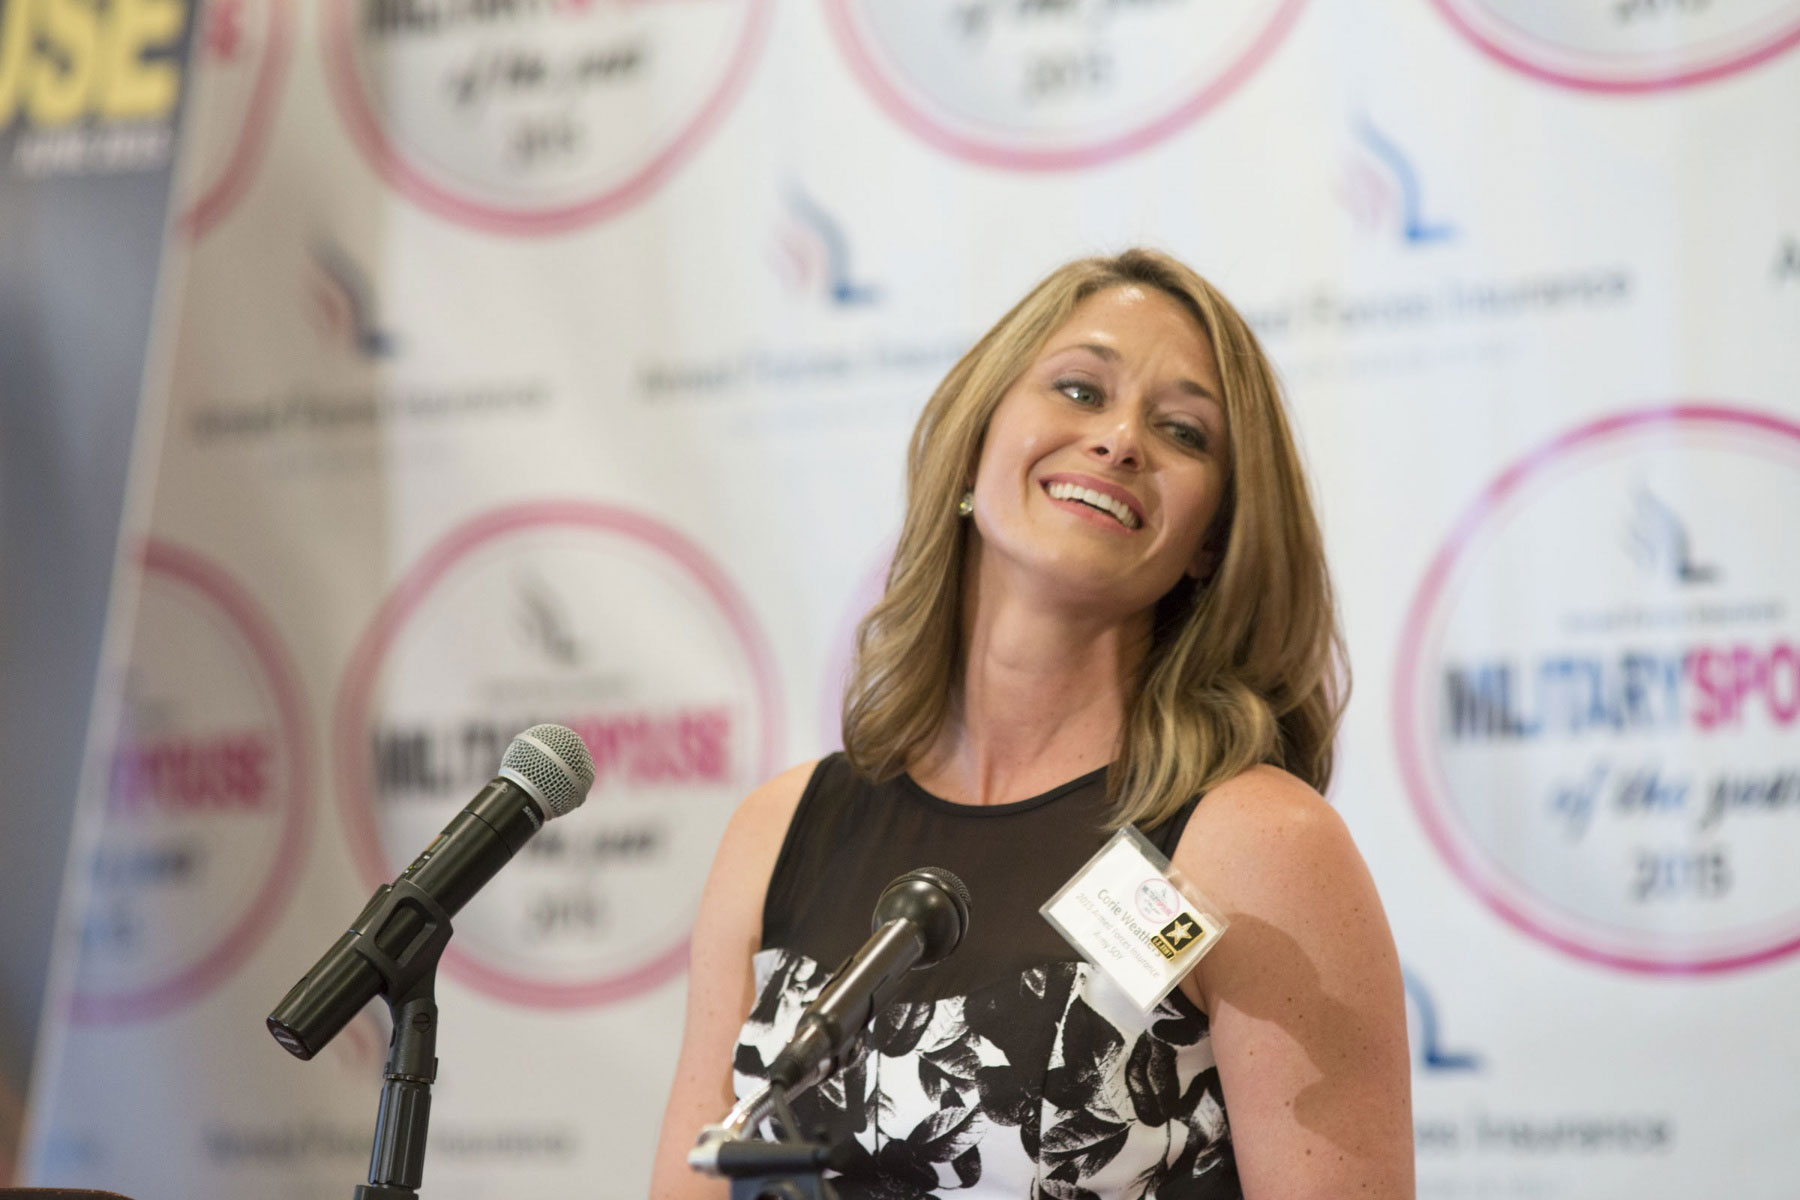 Army color casing ceremony script - Corie Weathers Gives Remarks After Receiving The 2015 Armed Forces Insurance Military Spouse Of The Year